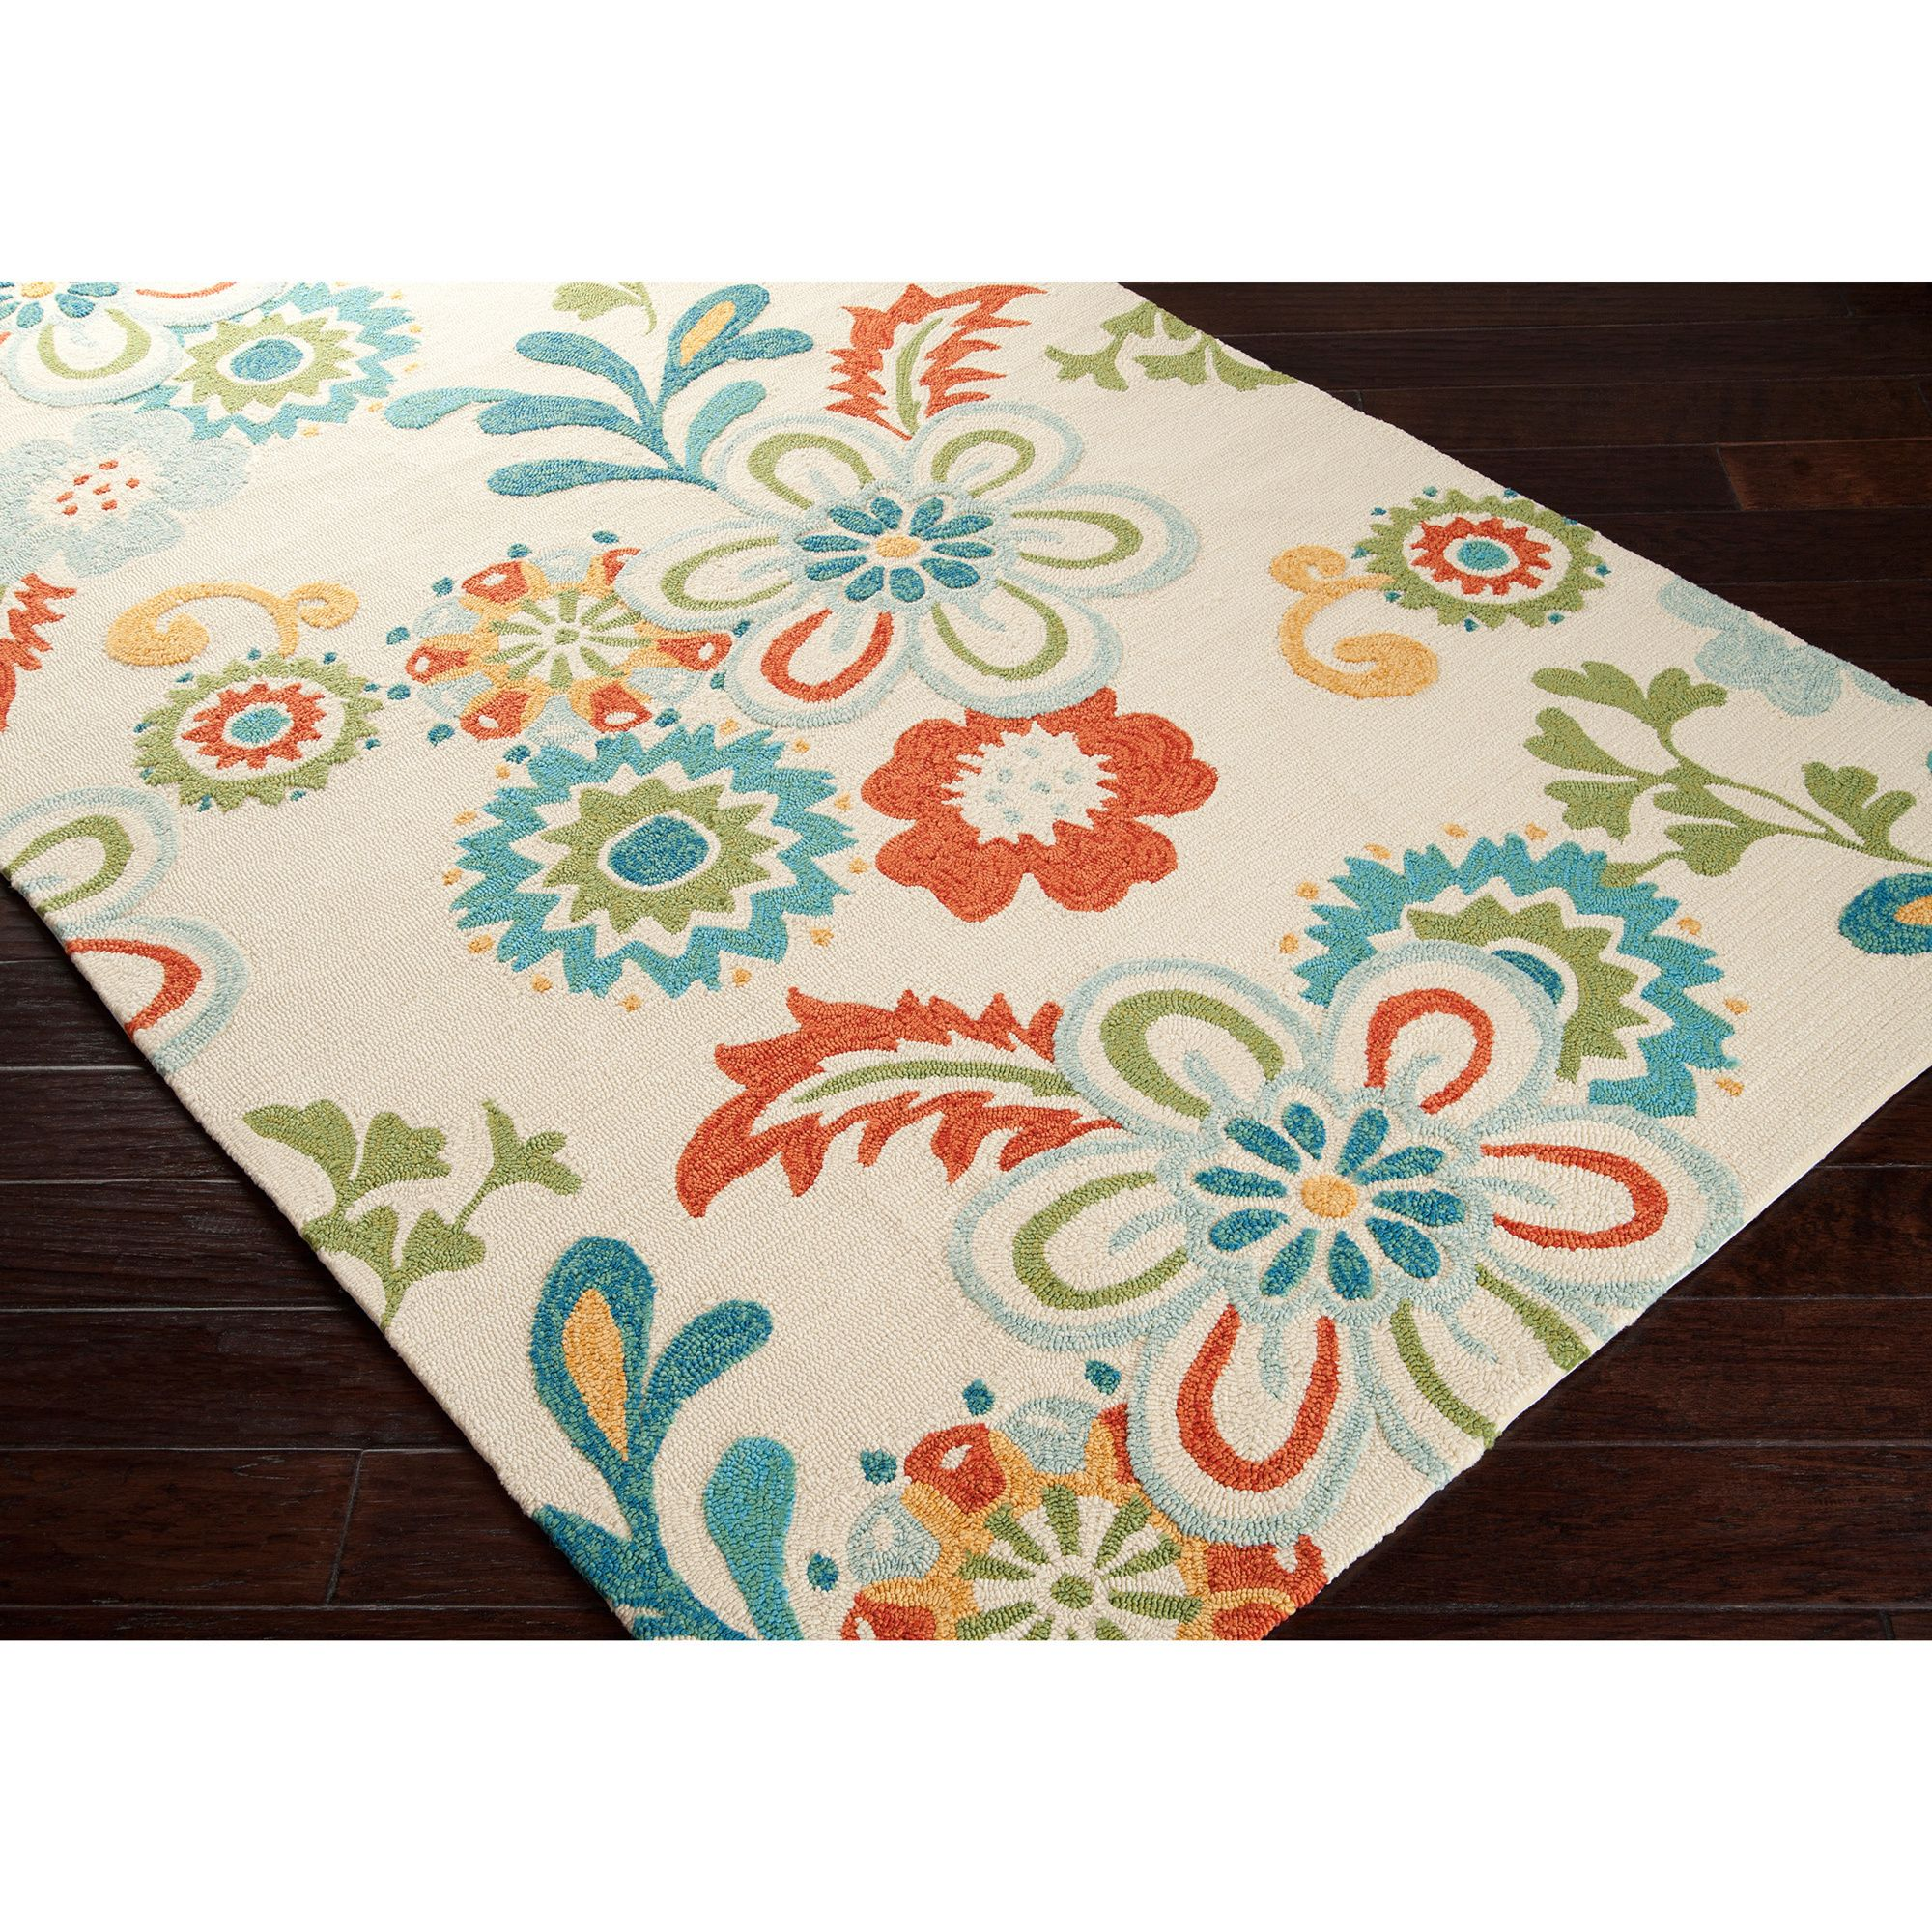 Hand-hooked Kim Transitional Floral Indoor/ Outdoor Area Rug (3'3 x 5'3) | Overstock.com Shopping - The Best Deals on 3x5 - 4x6 Rugs